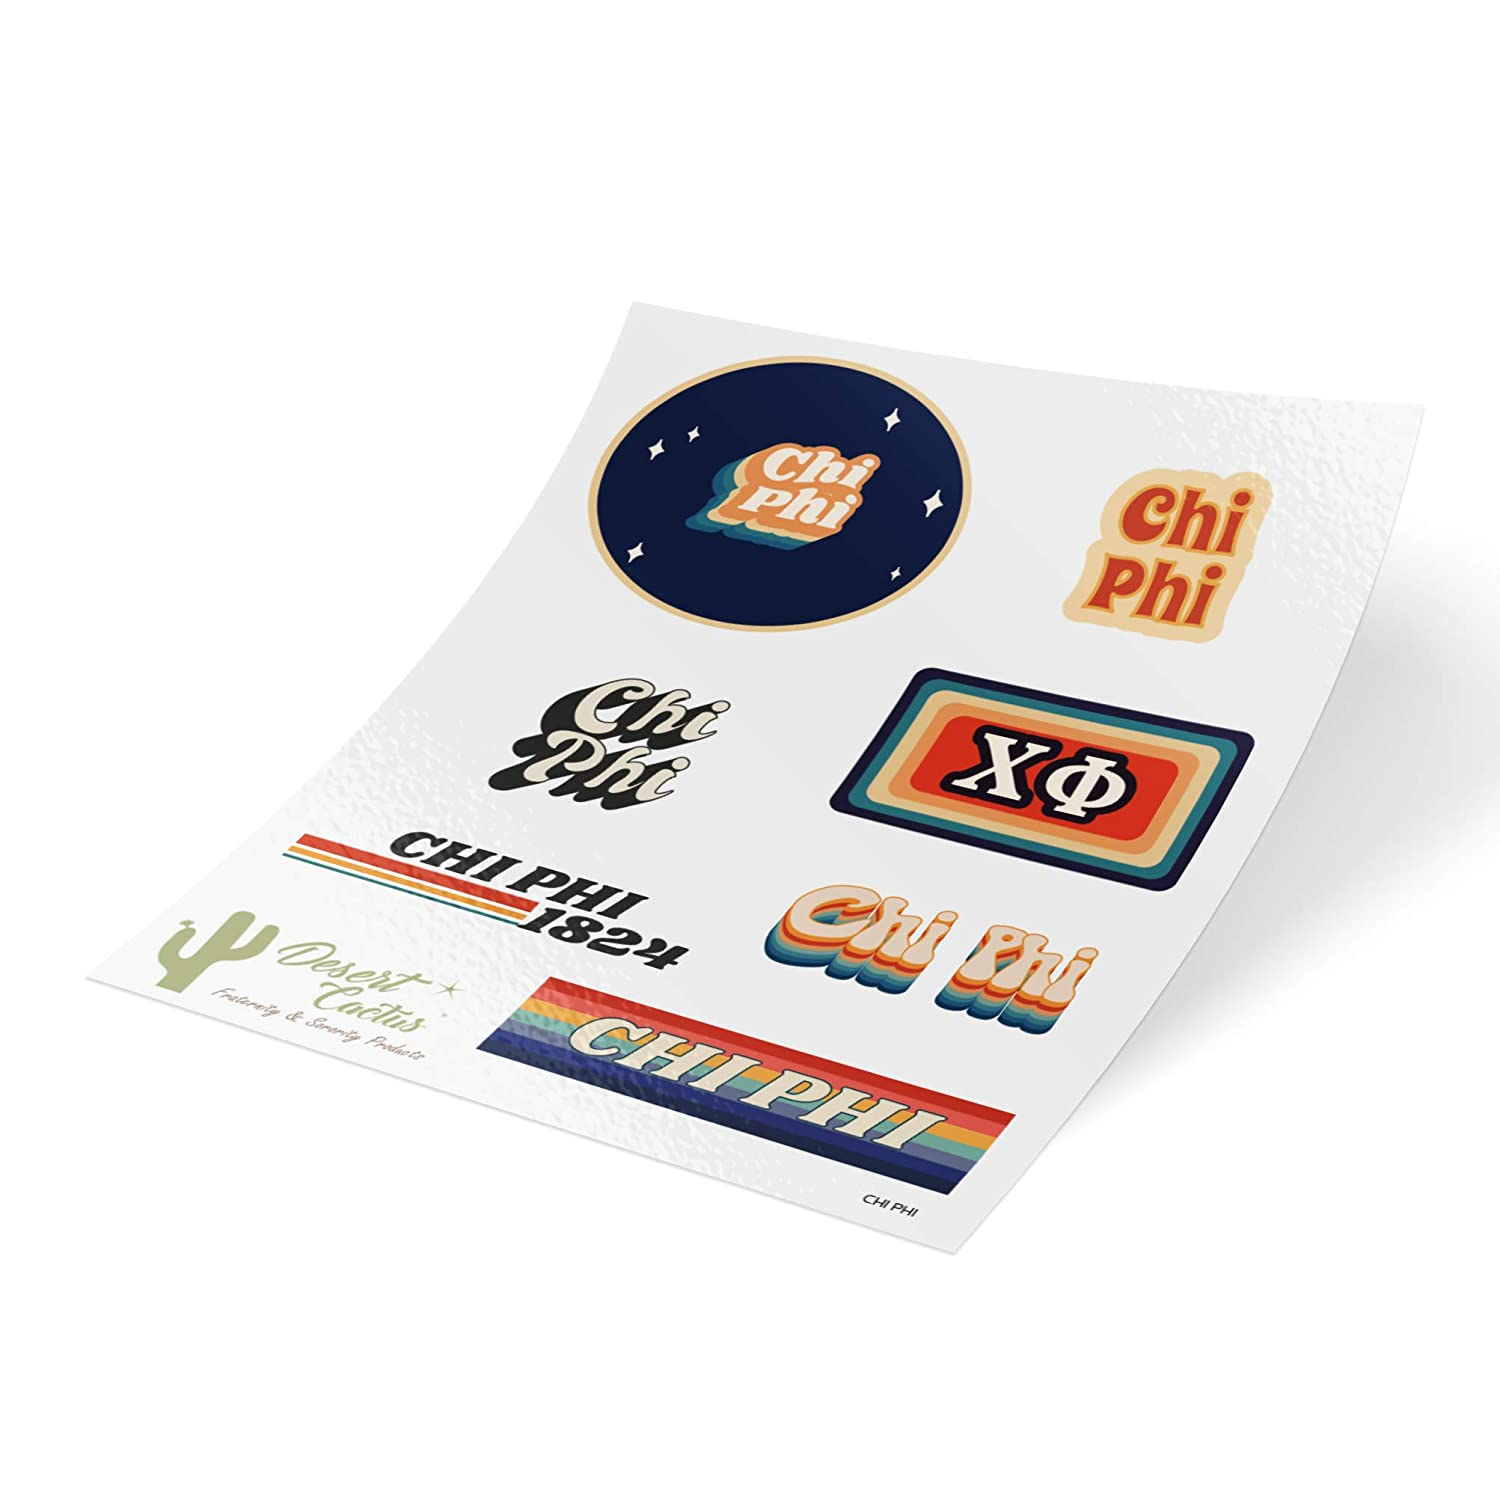 Chi Phi 70's Themed Sticker Sheet Decal Laptop Water Bottle Car (Full Sheet - 70's)